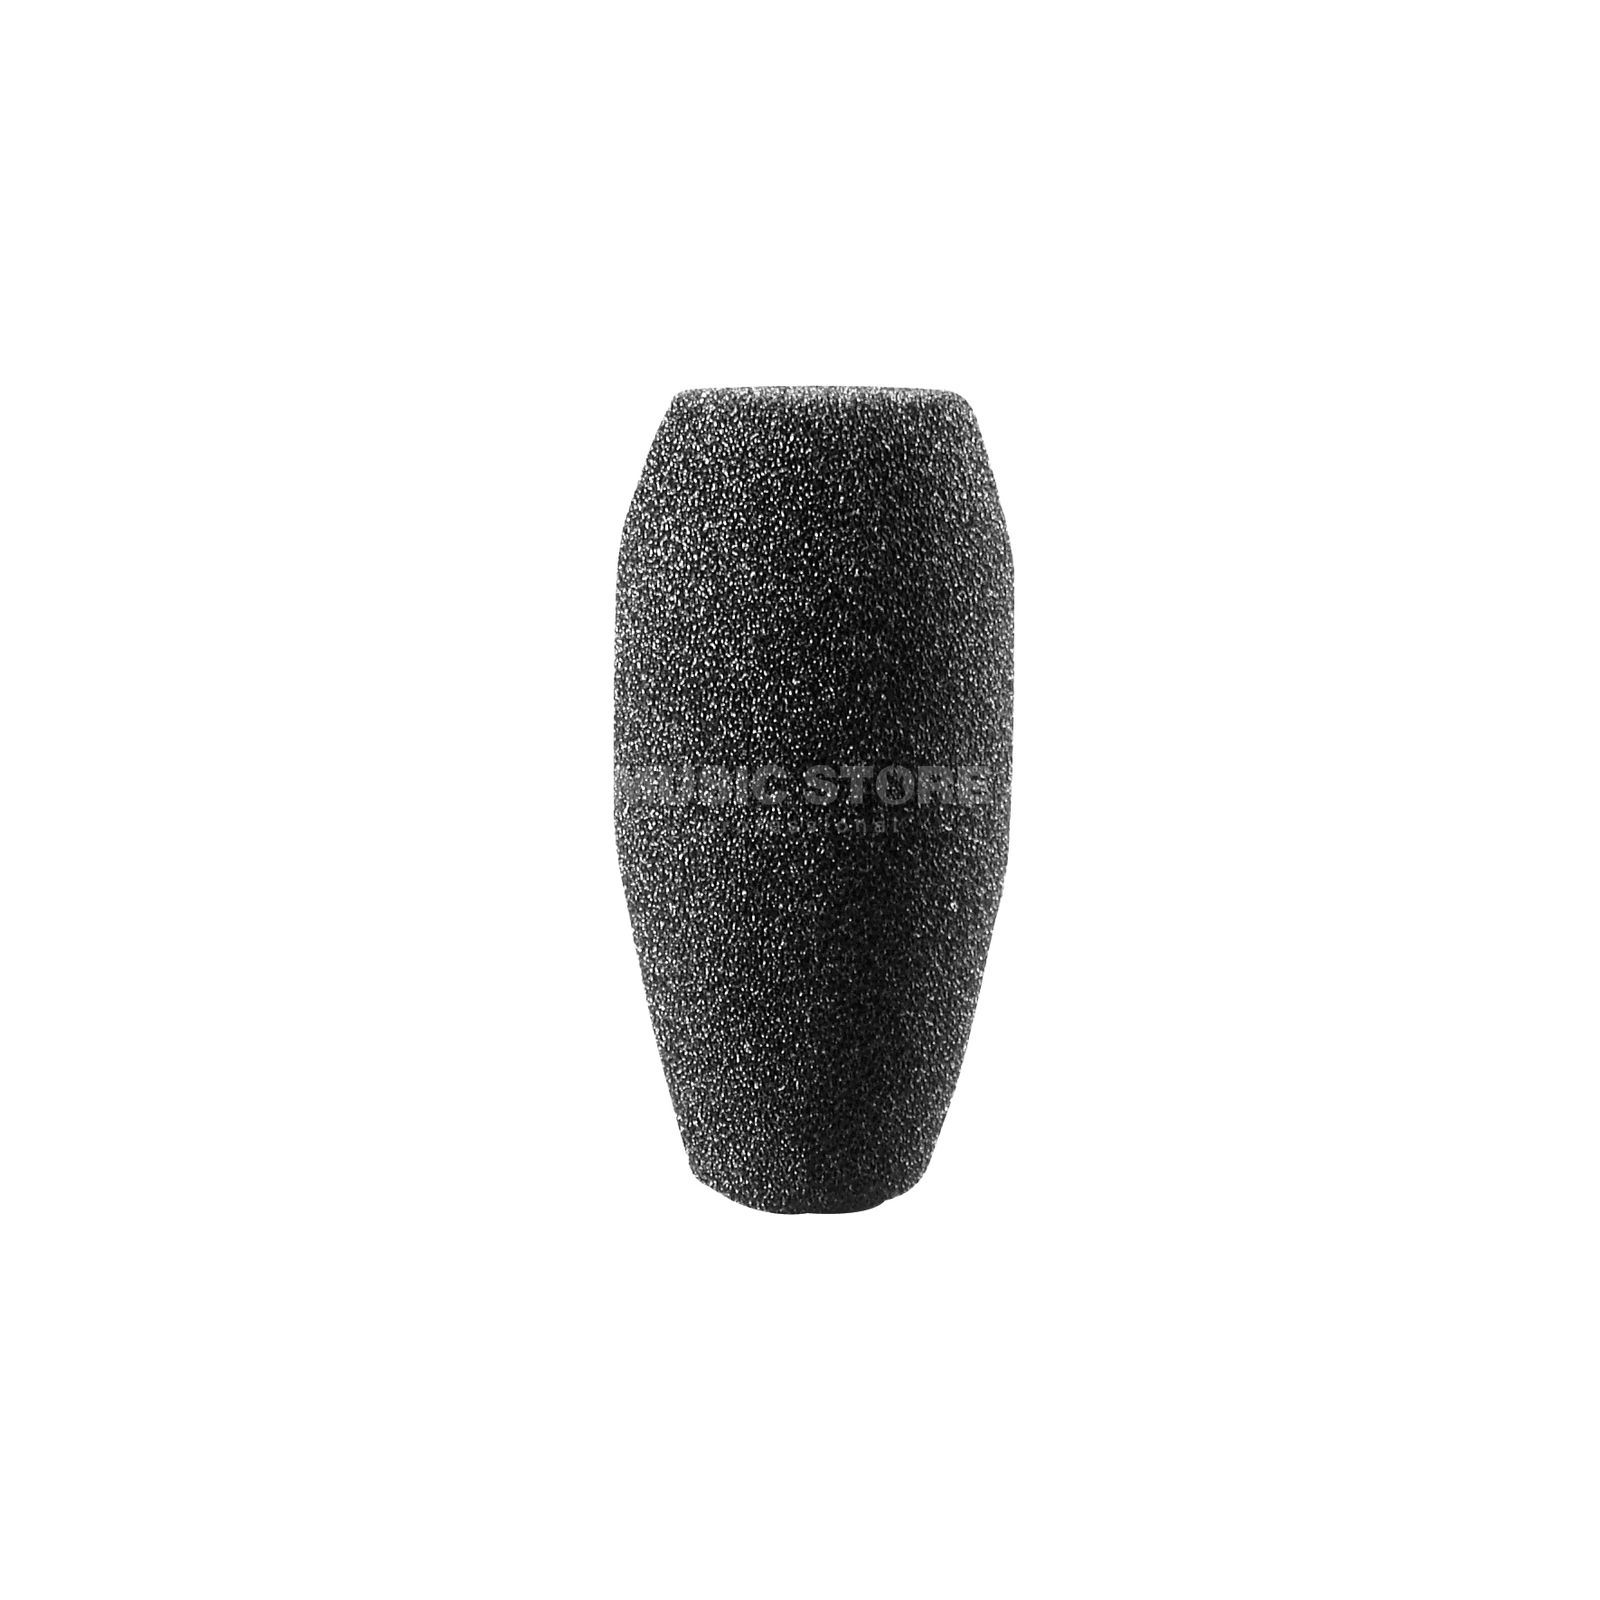 Audio-Technica AT8146 Wind Screenfilter for PRO47/49 Produktbillede